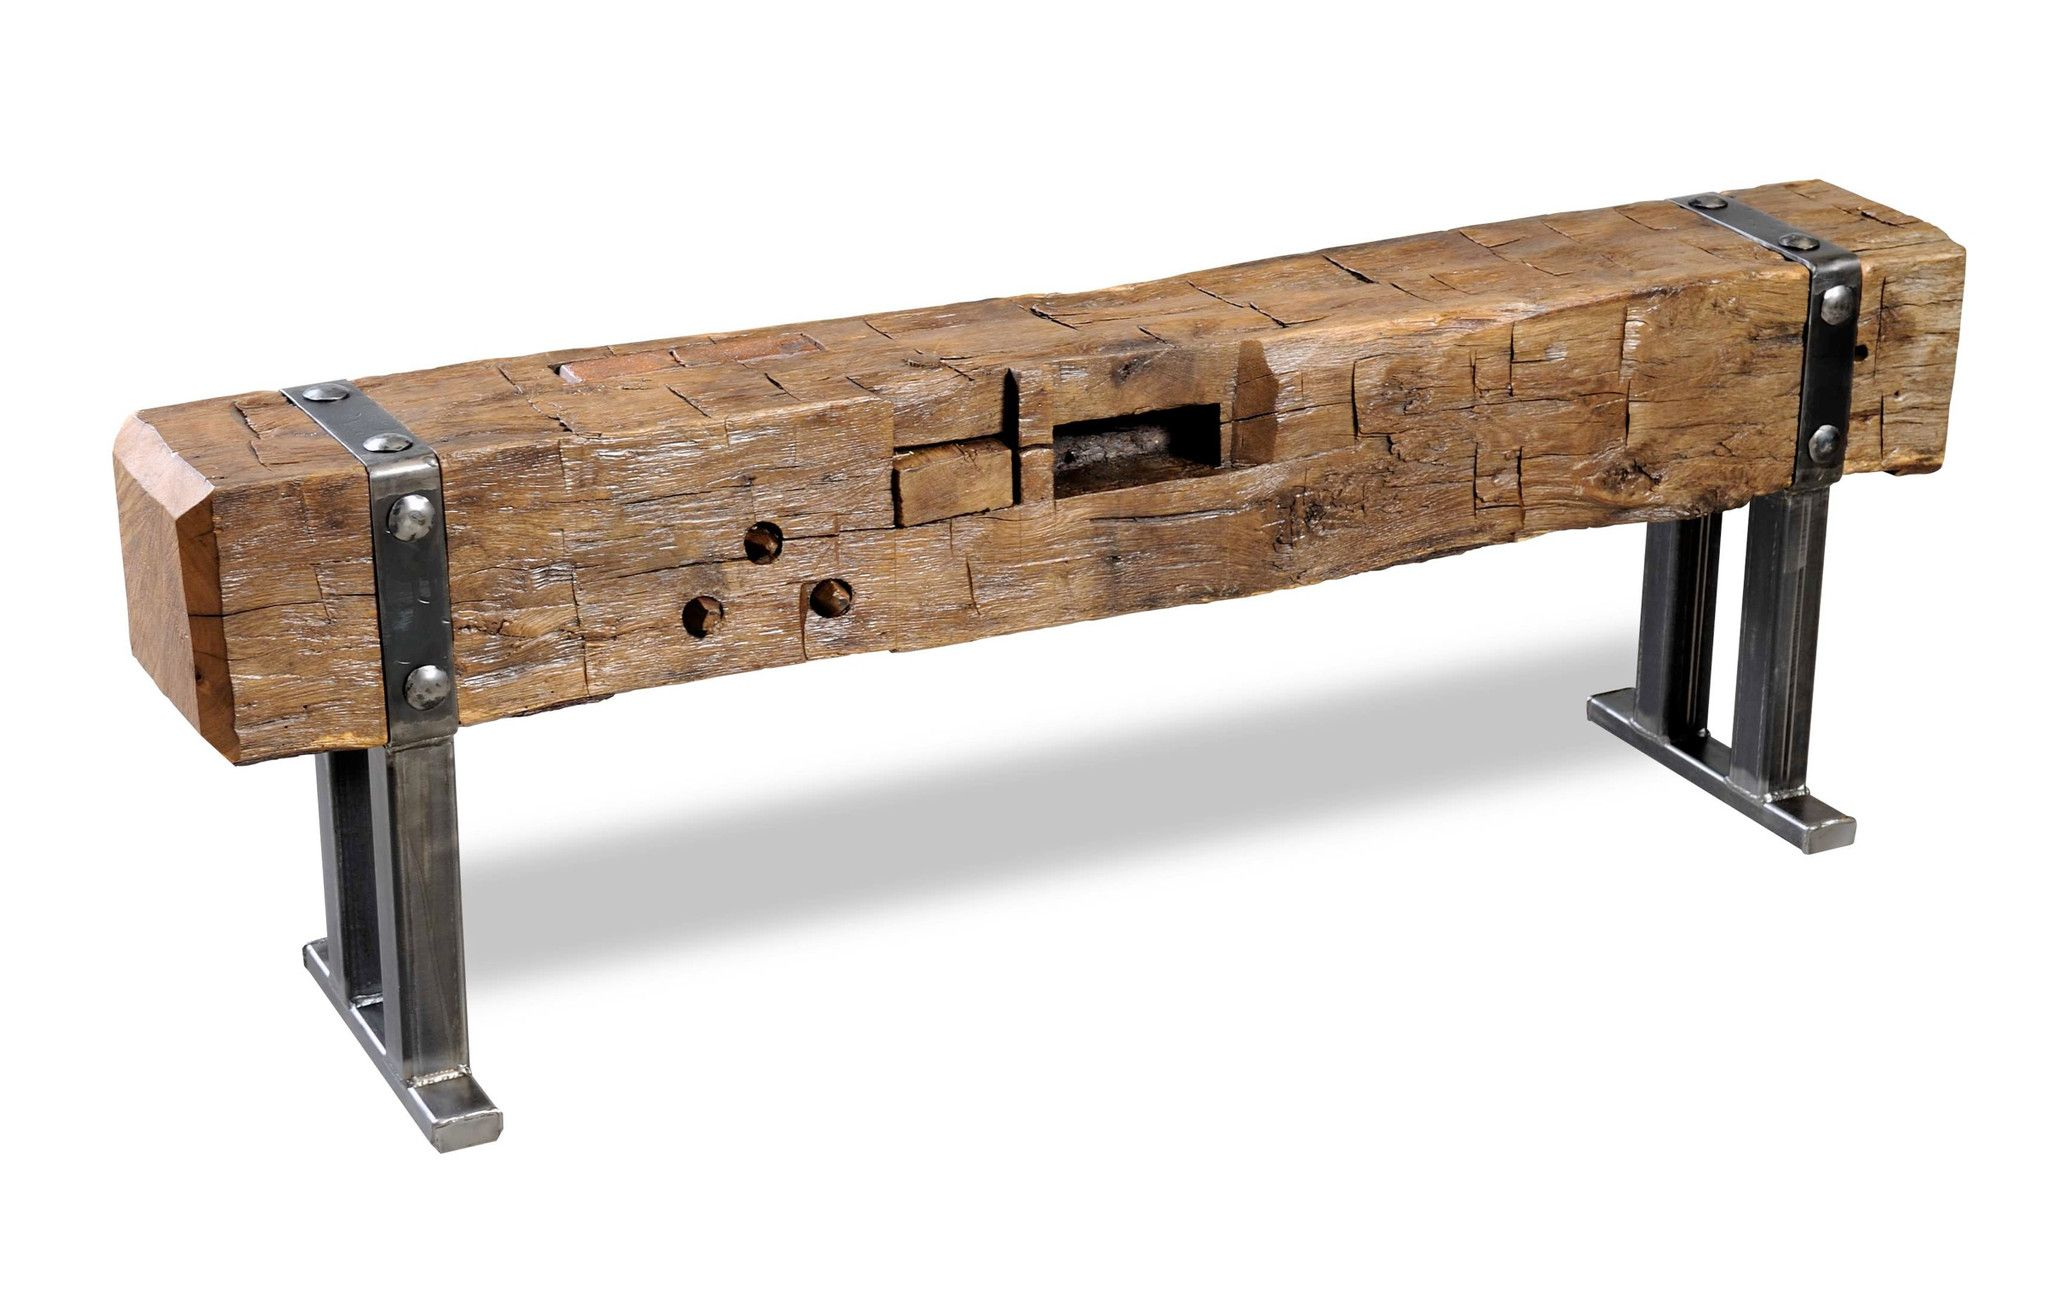 60 Inch Reclaimed Hand Hewn Beam Bench Our Hand Hewn Beam Benches Are Made From Hand Hewn Beams Rustic Furniture Barn Wood Projects